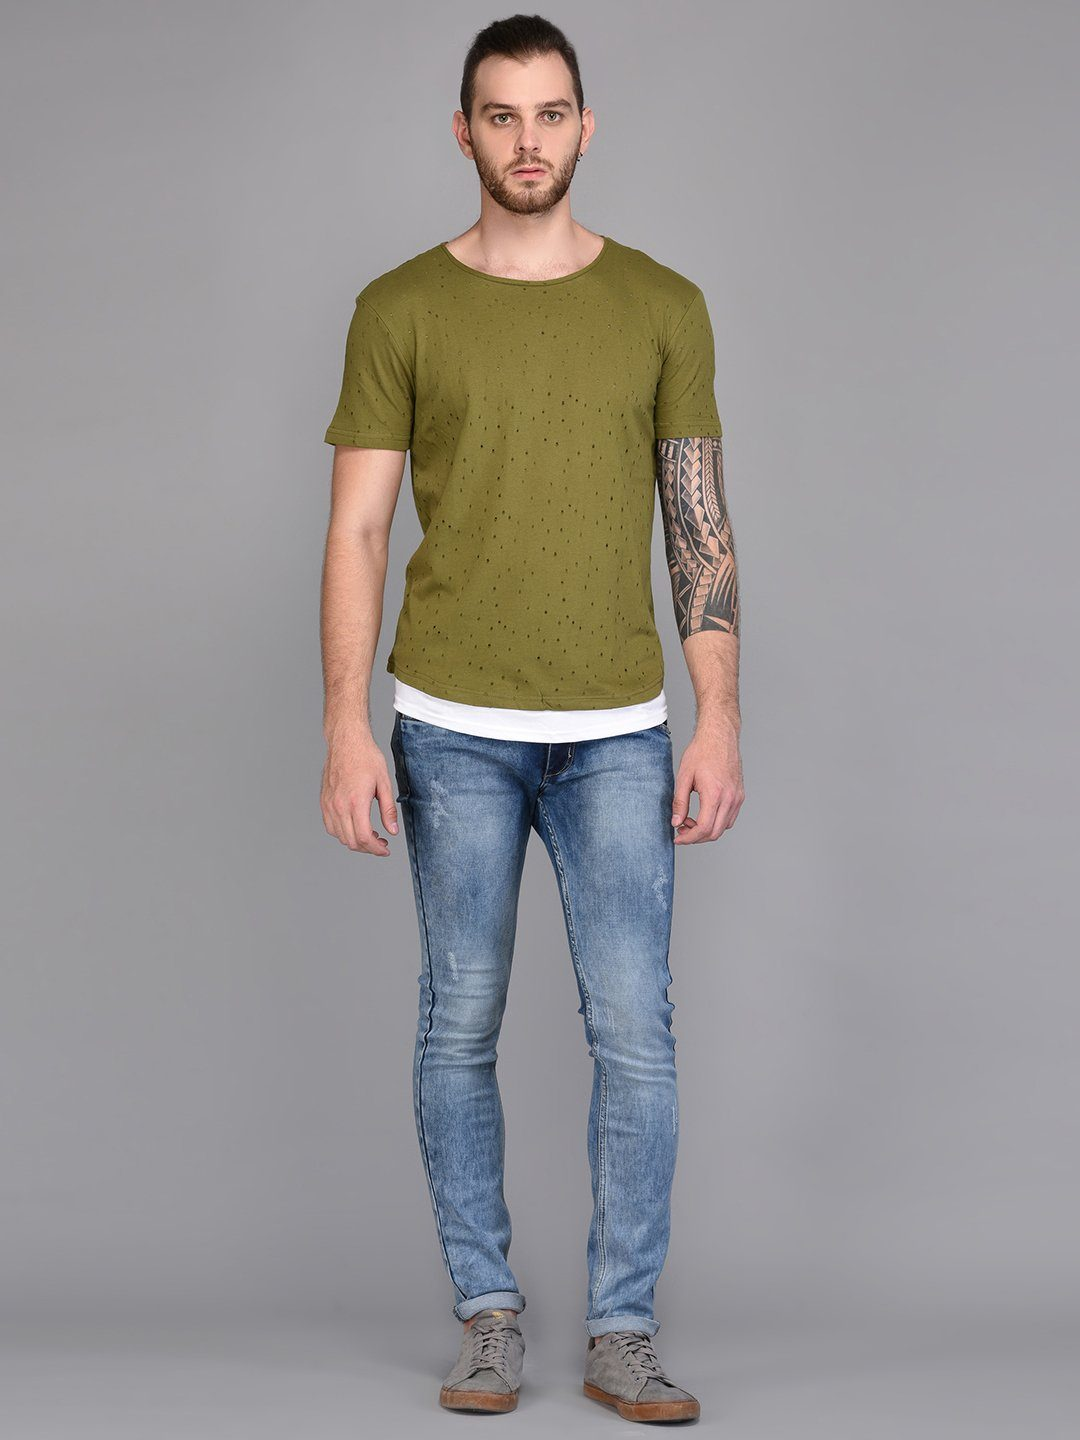 Olive Distressed T-shirt with Contrast Lining